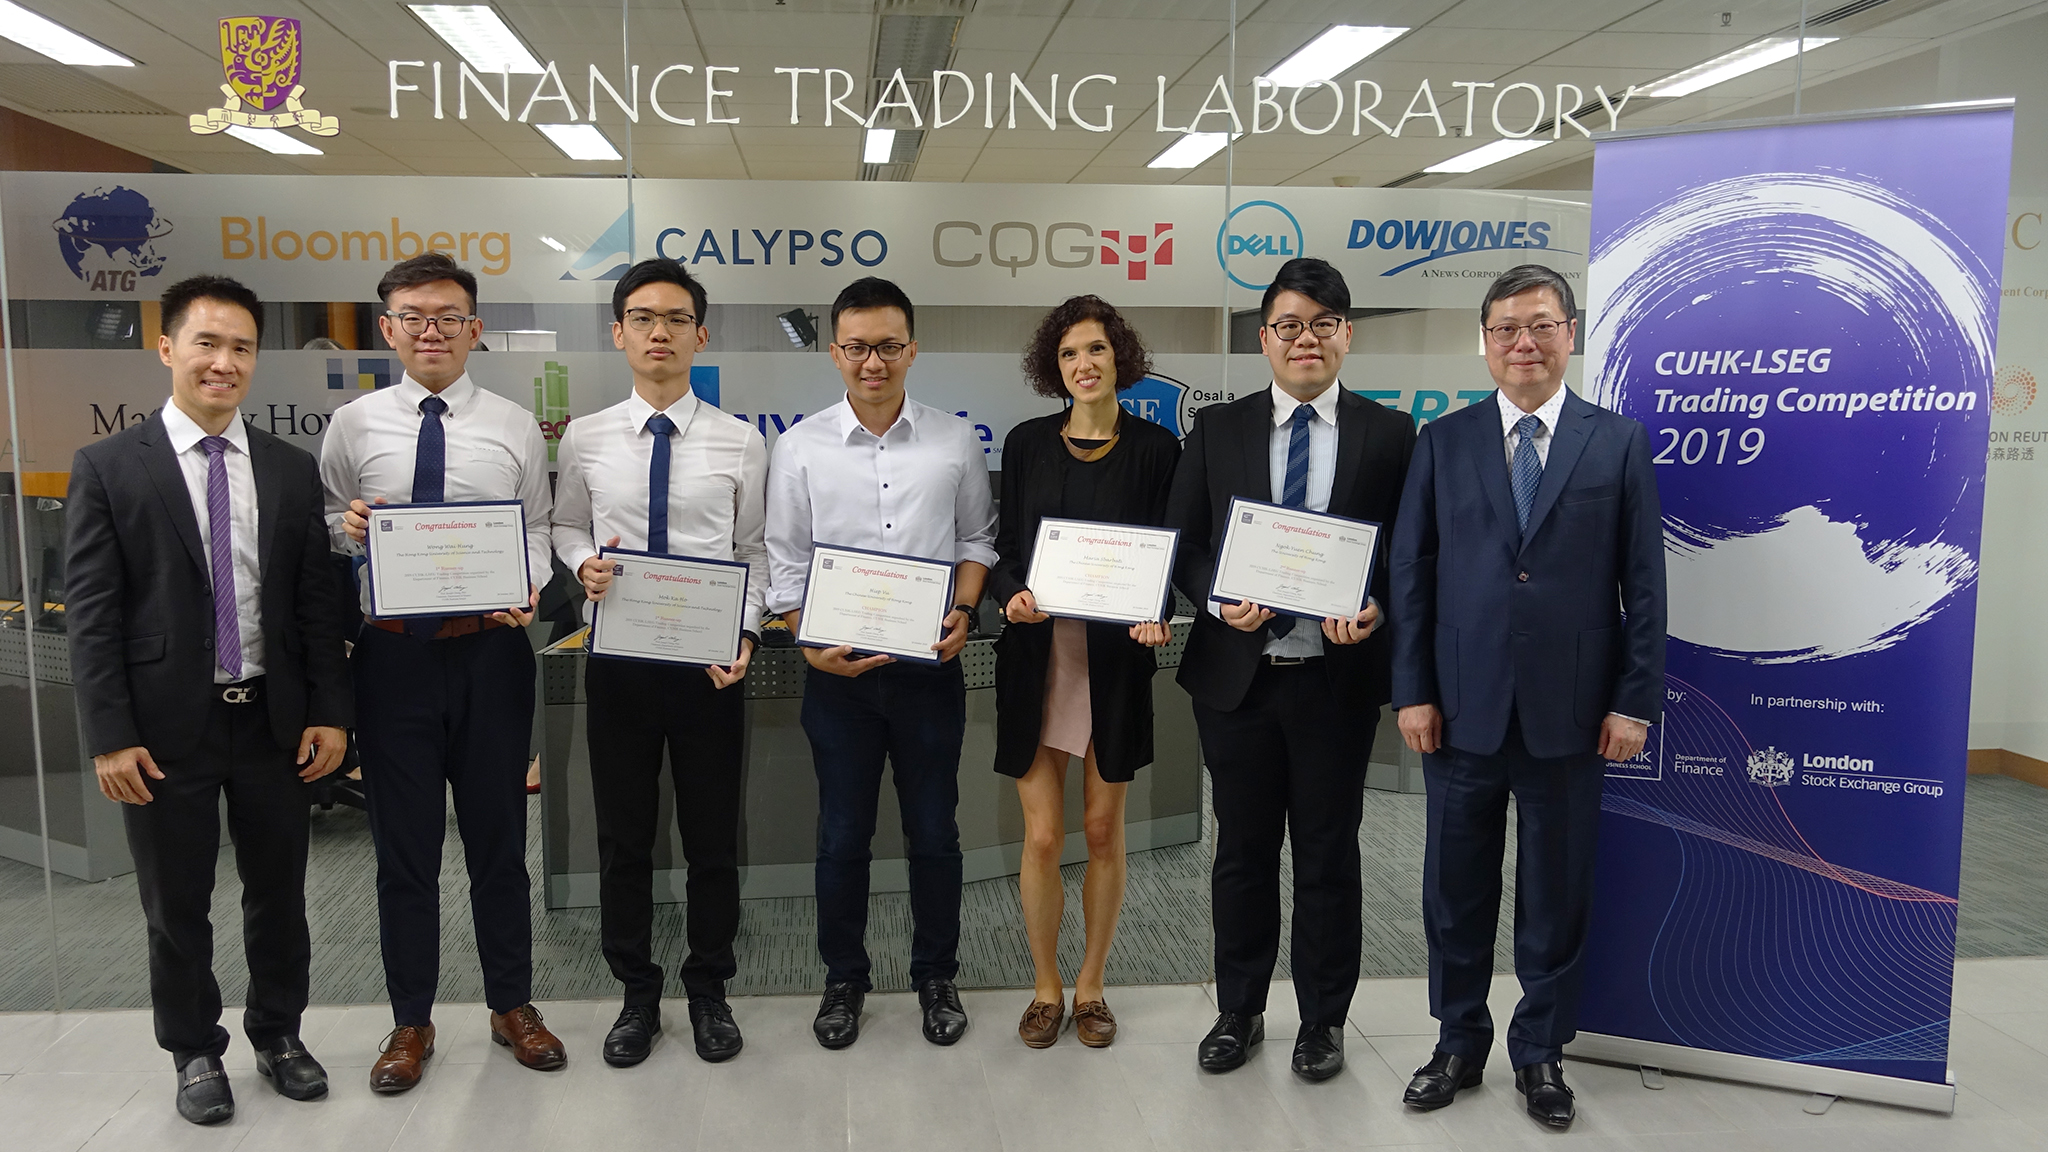 2019 CUHK-LSEG Trading Competition - Award Winners